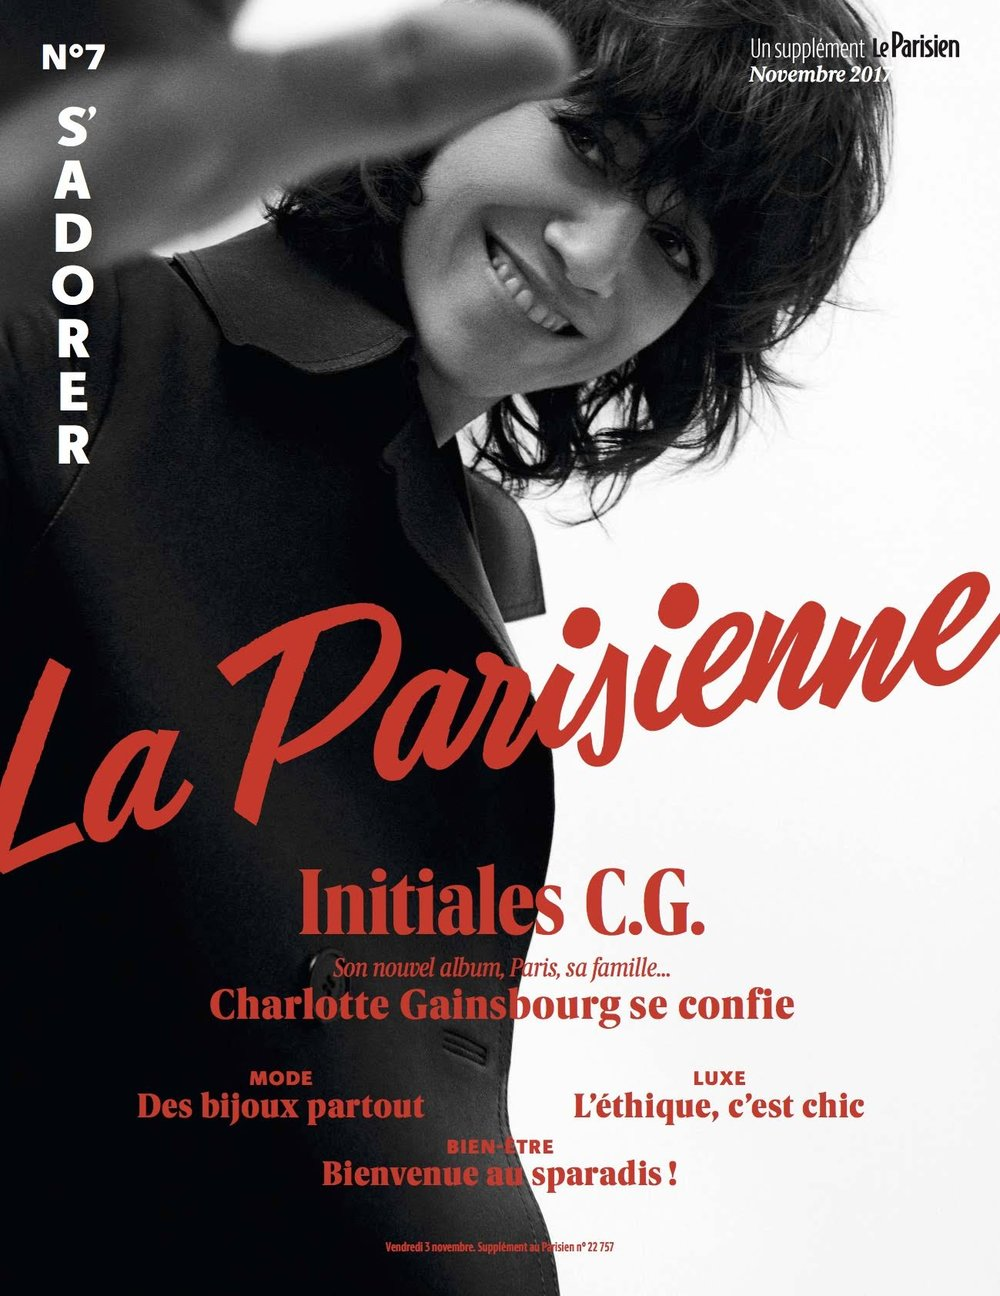 La Parisienne Cover